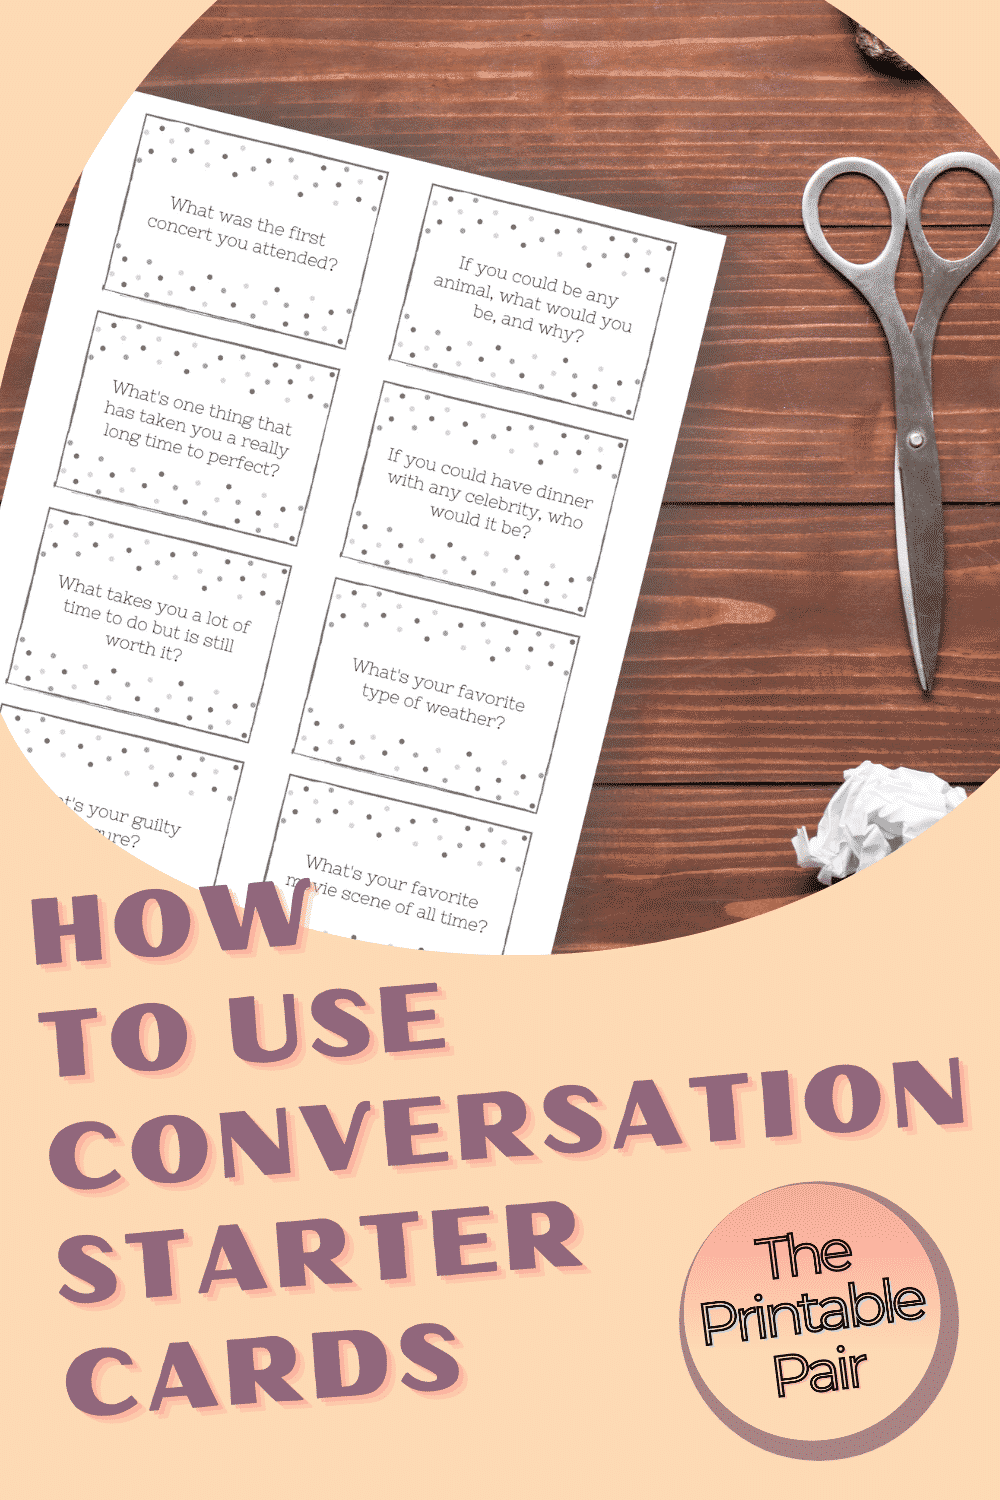 How to Use Conversation Starters